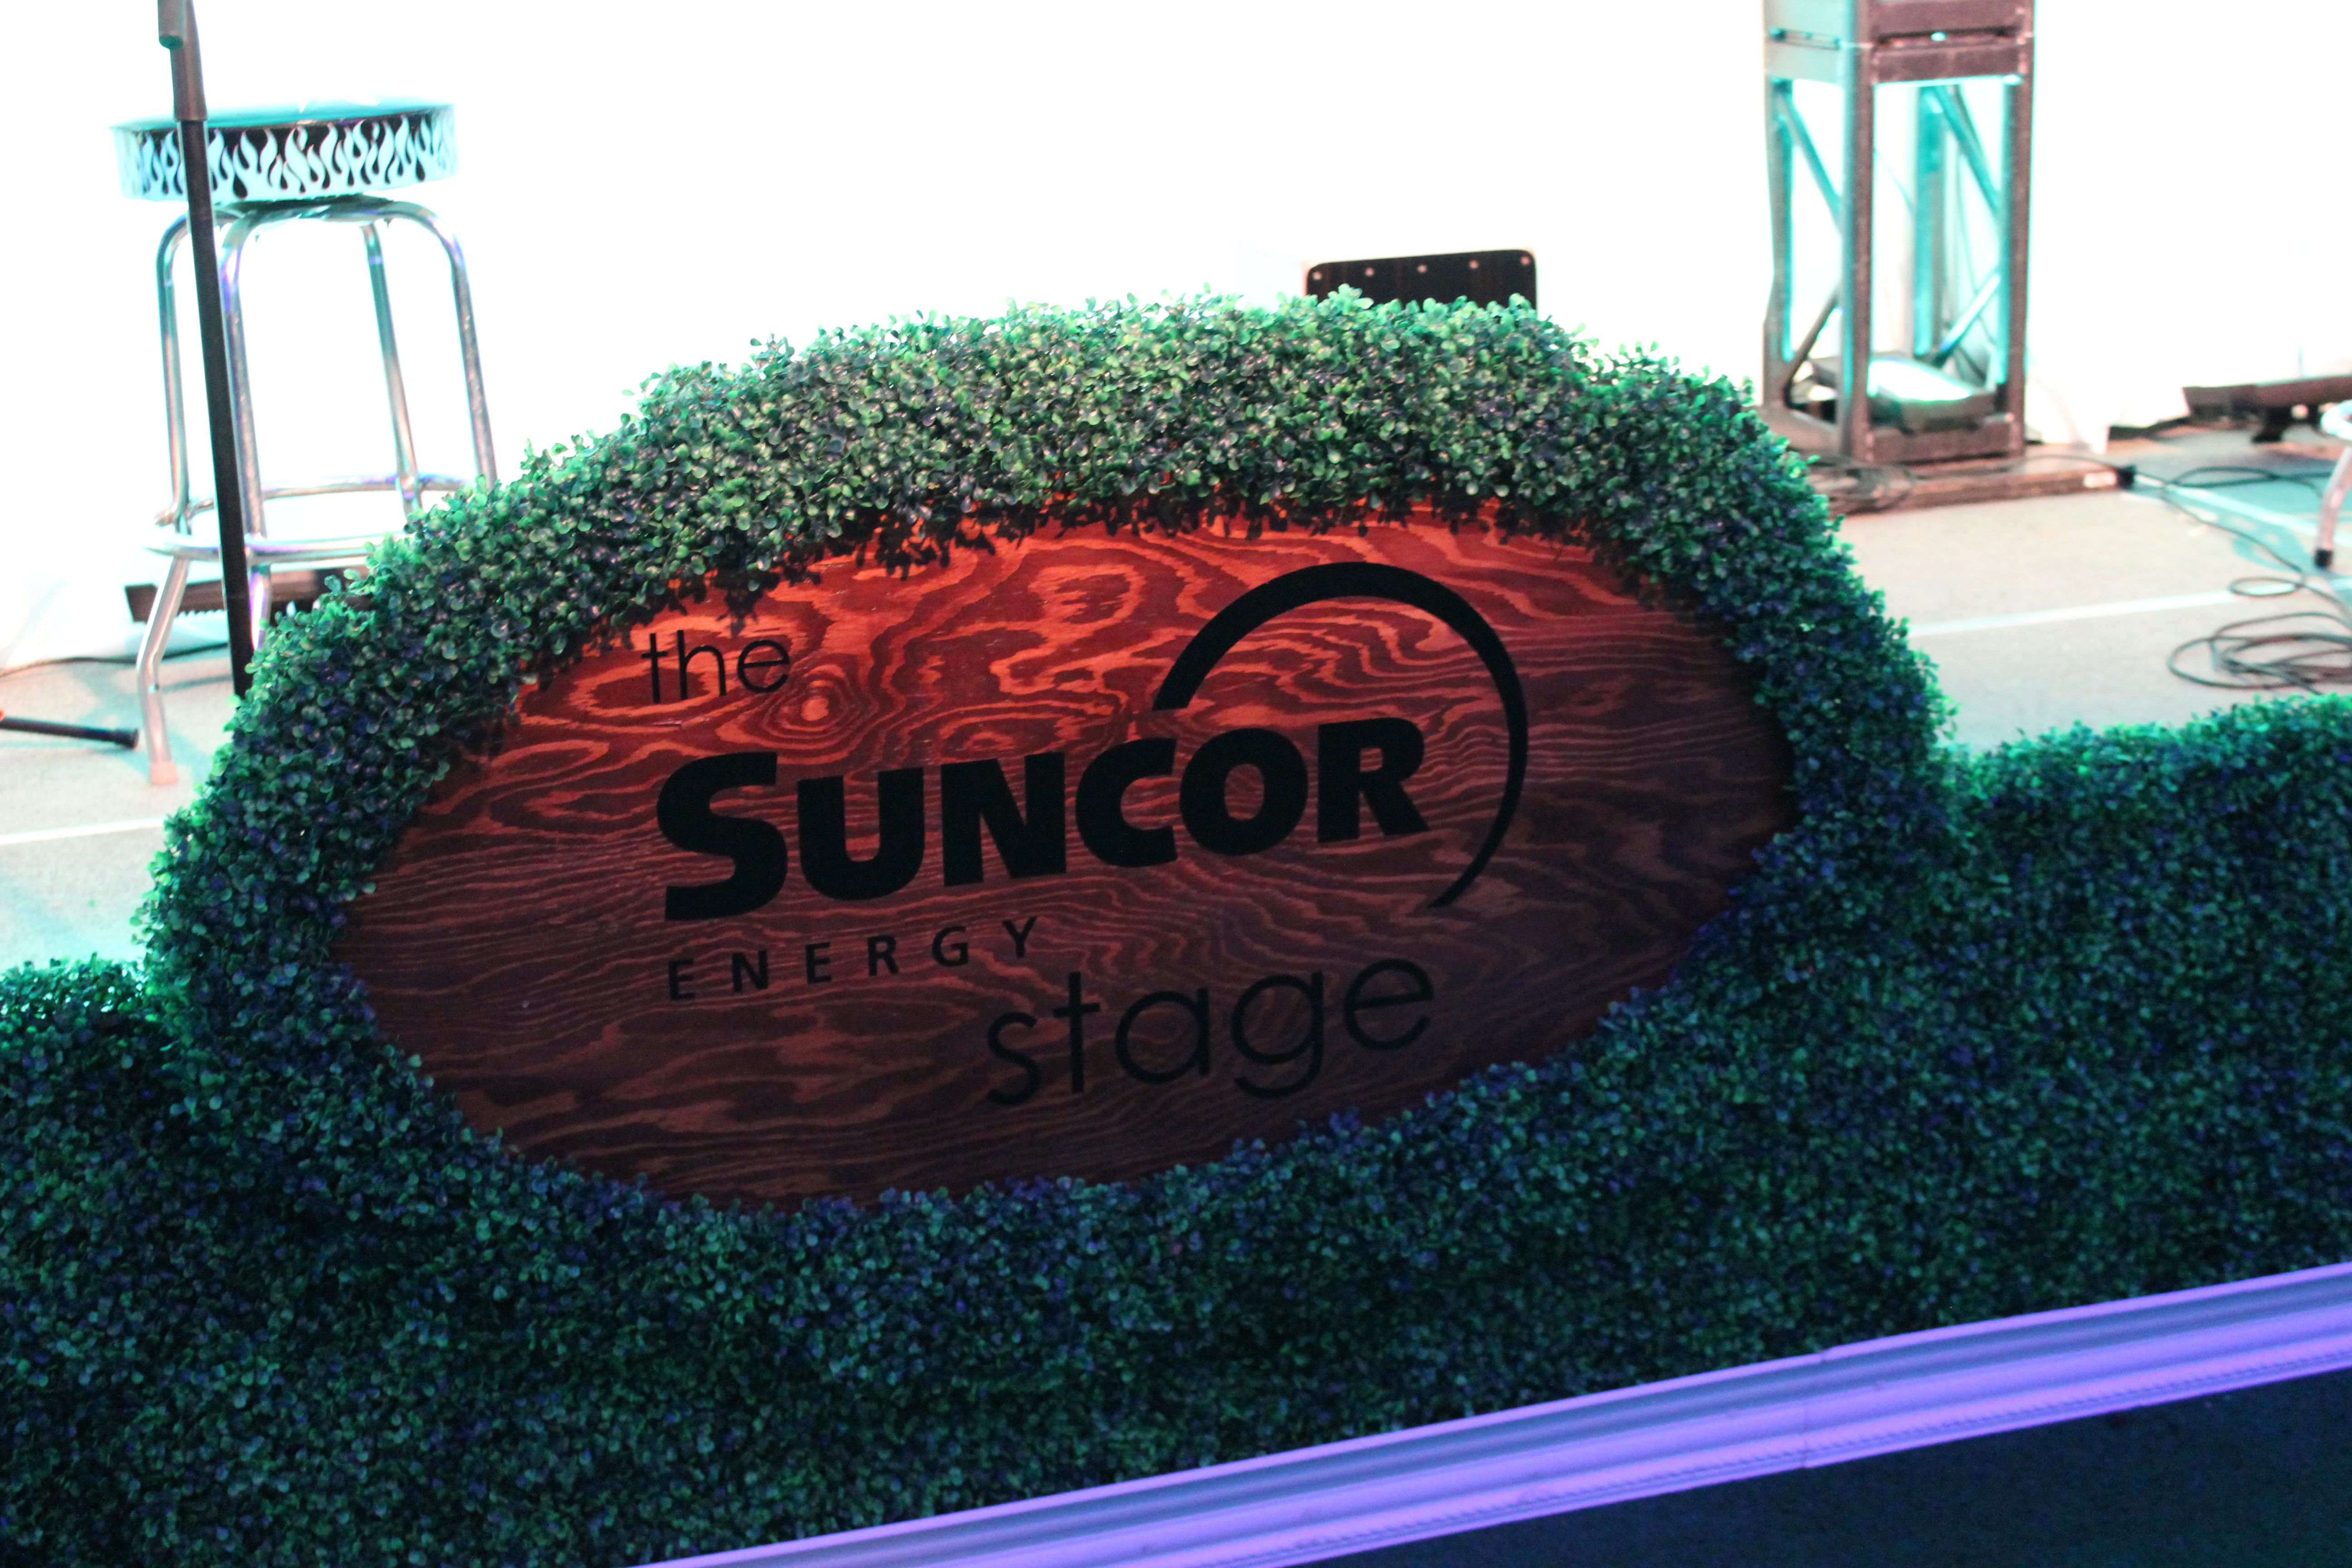 The Stage Was Hedged With Boxwood Which Included A Custom Sponsor Sign That Looked Like An Oversized Park Pl Wine Auctions Suncor Energy Big Brother Big Sister